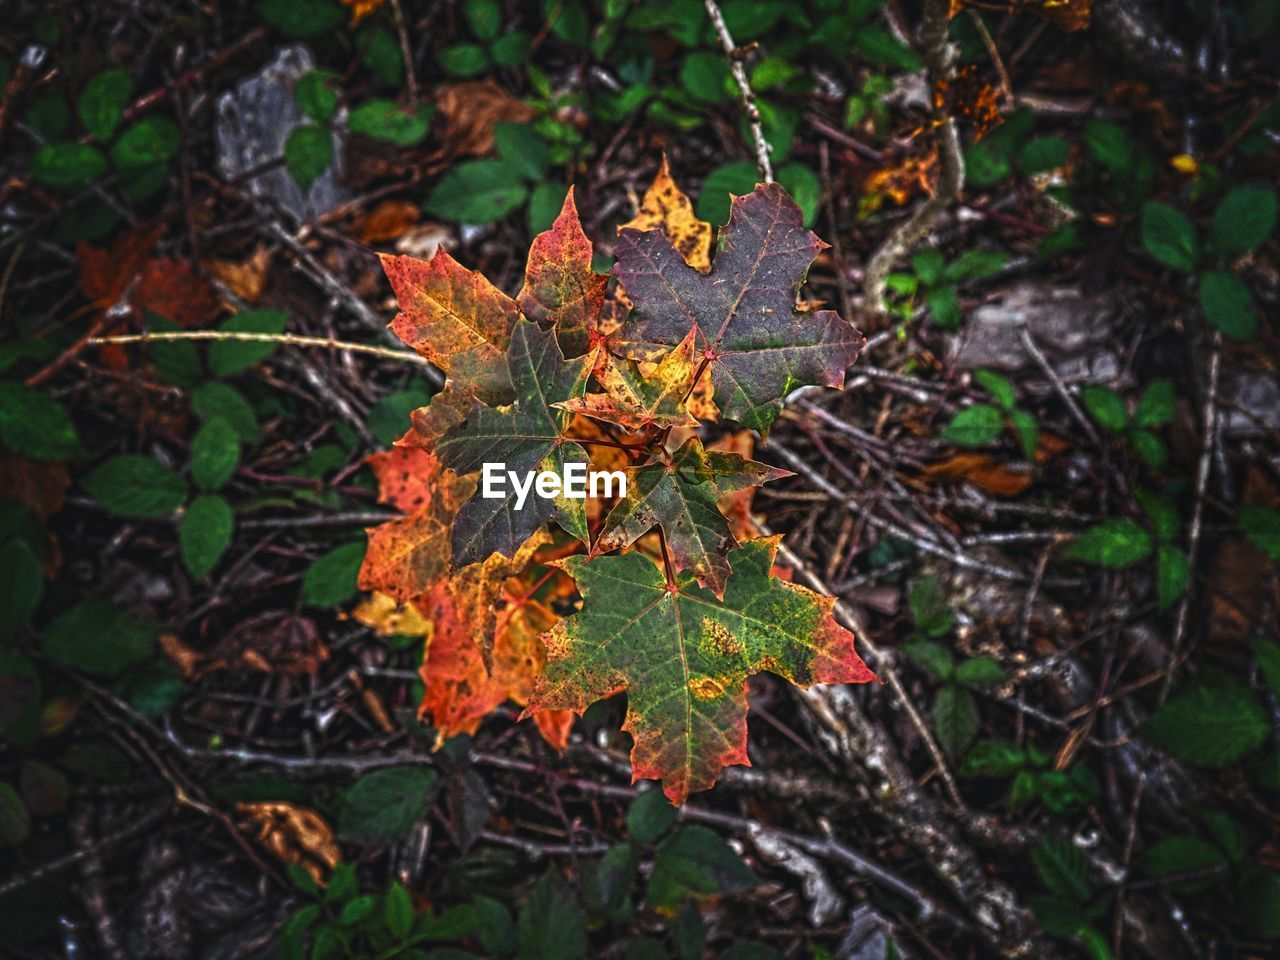 leaf, plant part, plant, nature, growth, beauty in nature, day, close-up, autumn, change, land, no people, tree, selective focus, focus on foreground, field, high angle view, outdoors, forest, orange color, leaves, maple leaf, natural condition